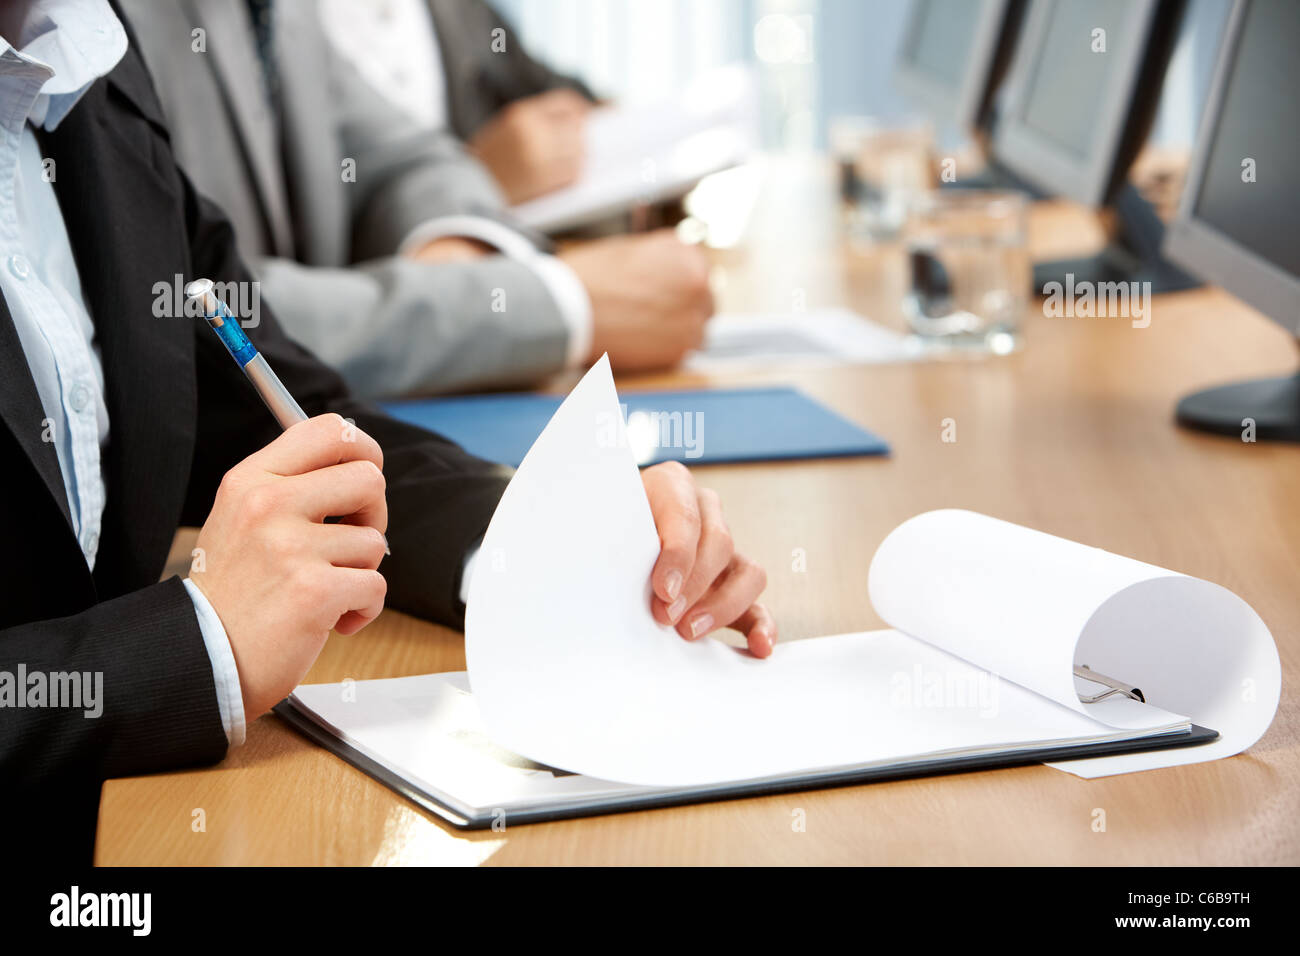 Human hand with pen holding paper during written work - Stock Image